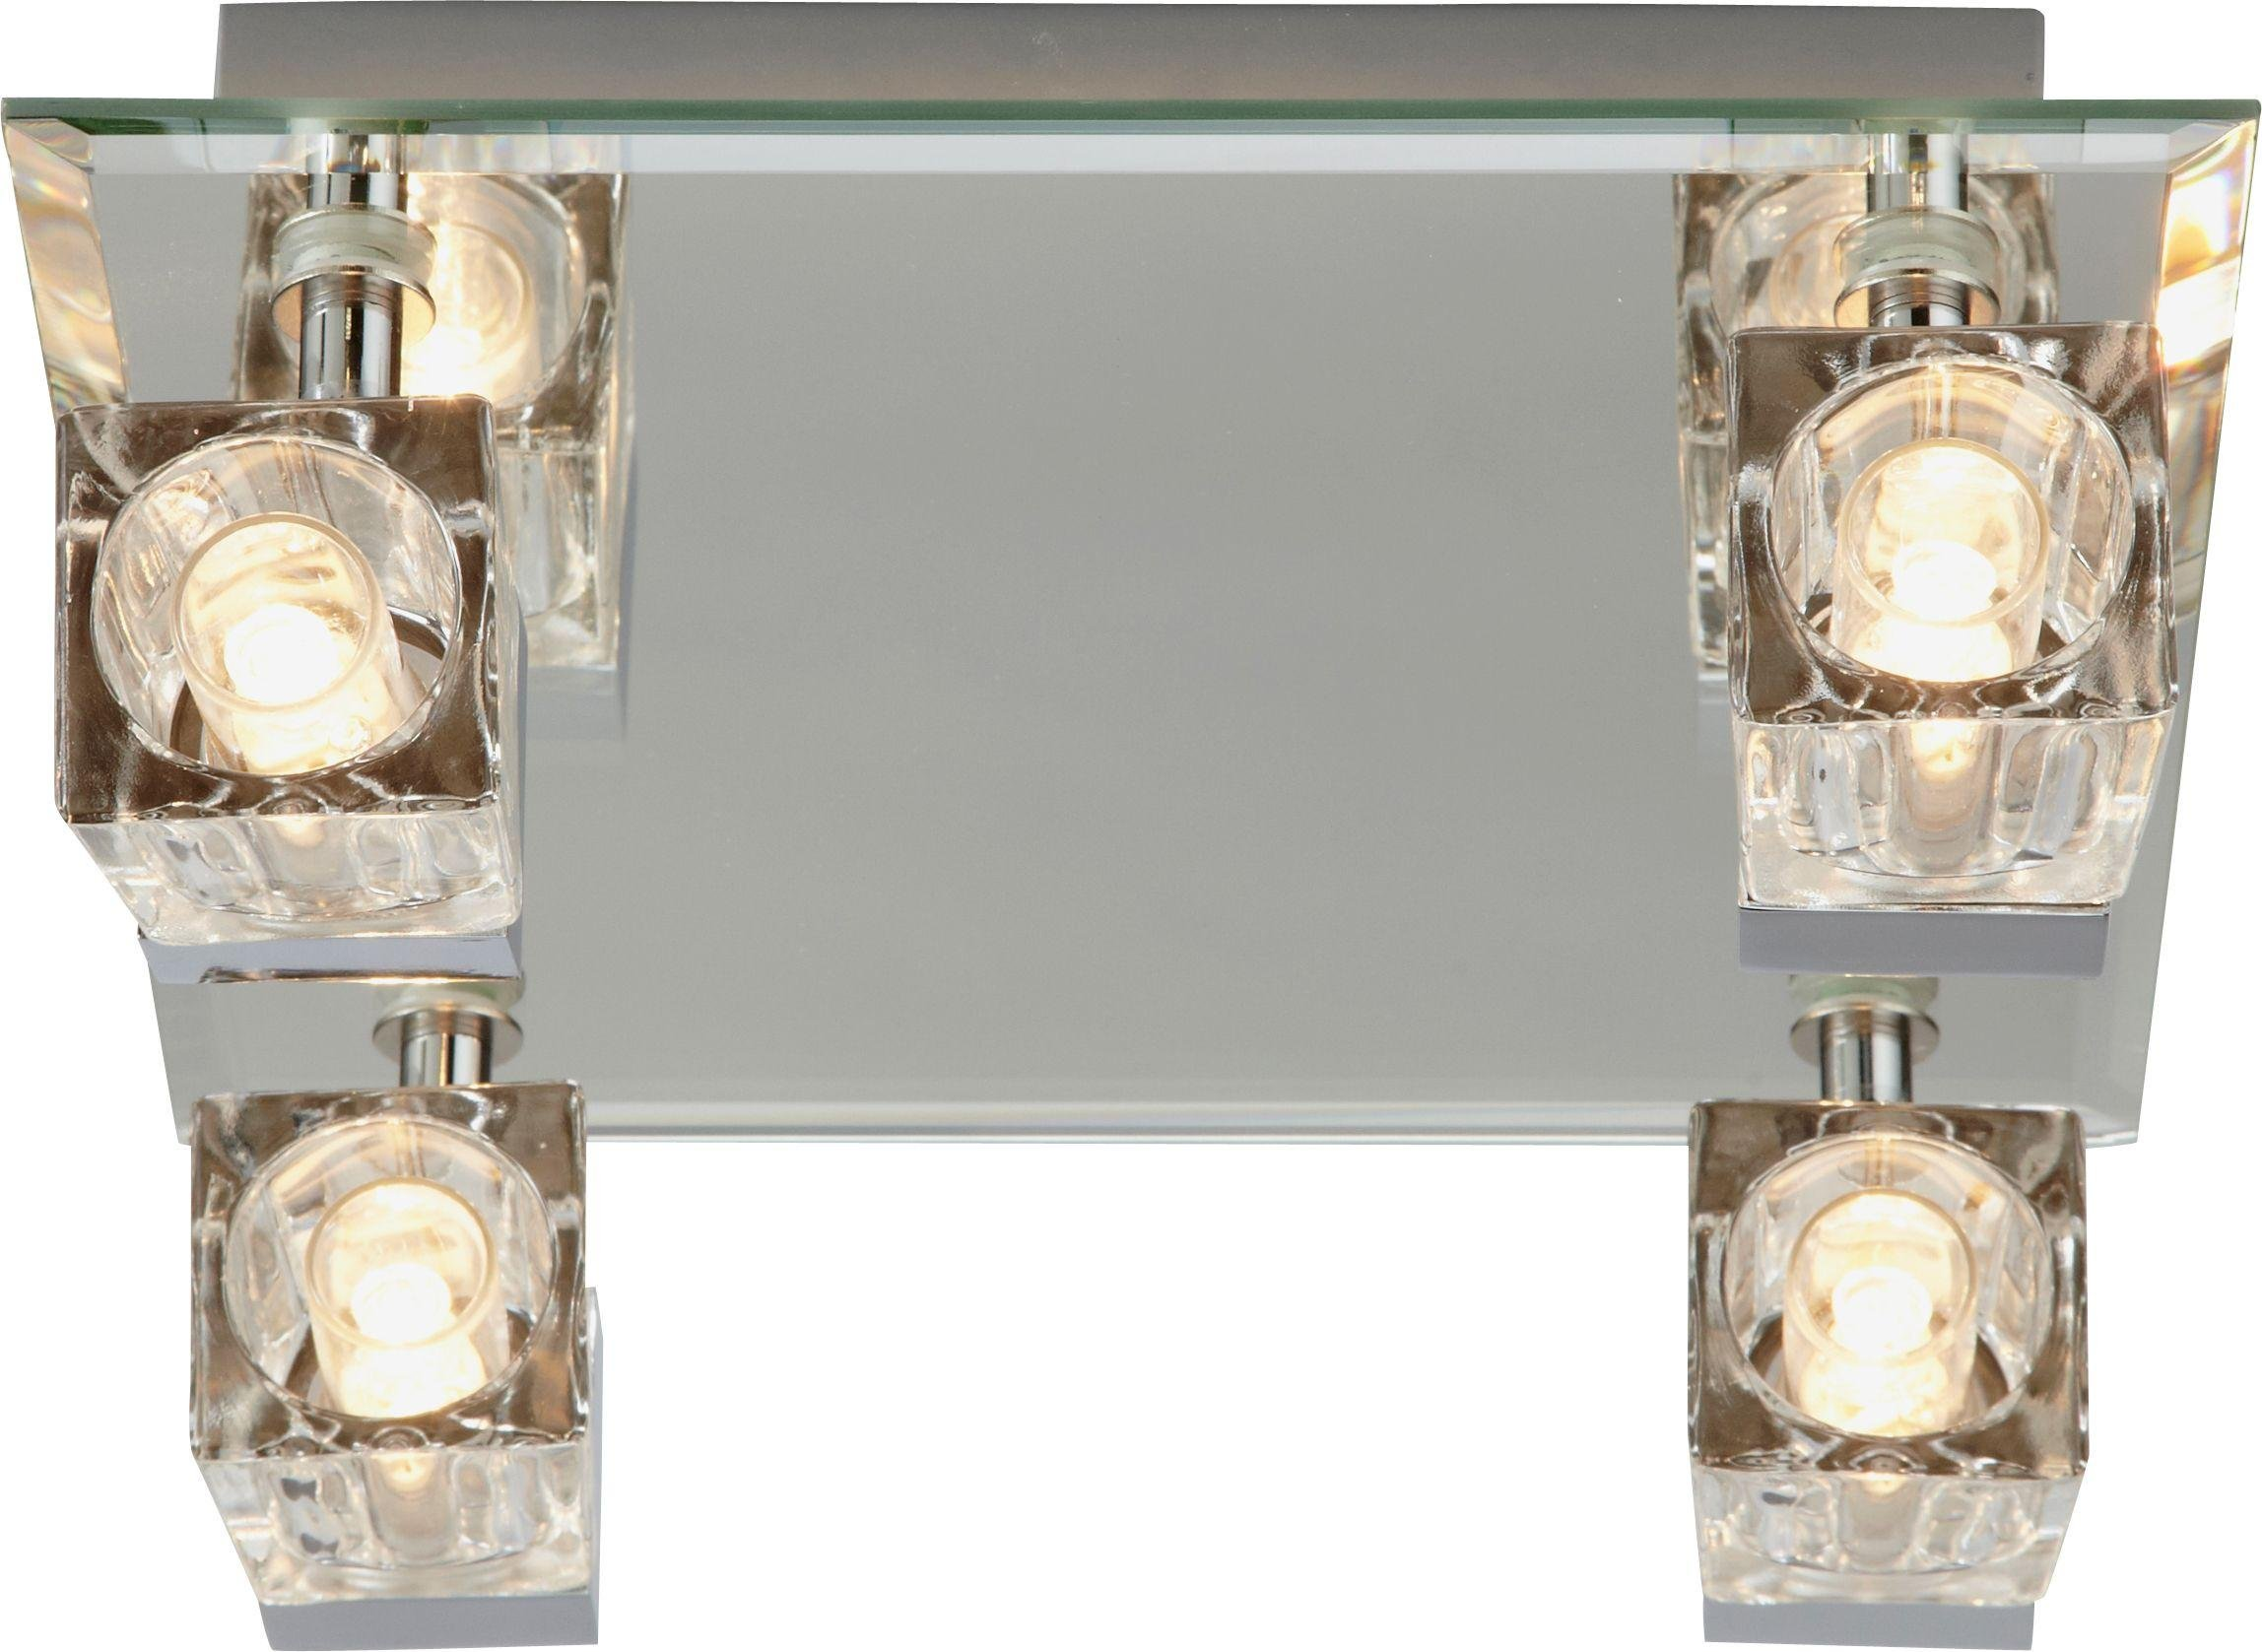 Argos Home Mira 4 Glass Cube Bathroom Spotlights - Chrome